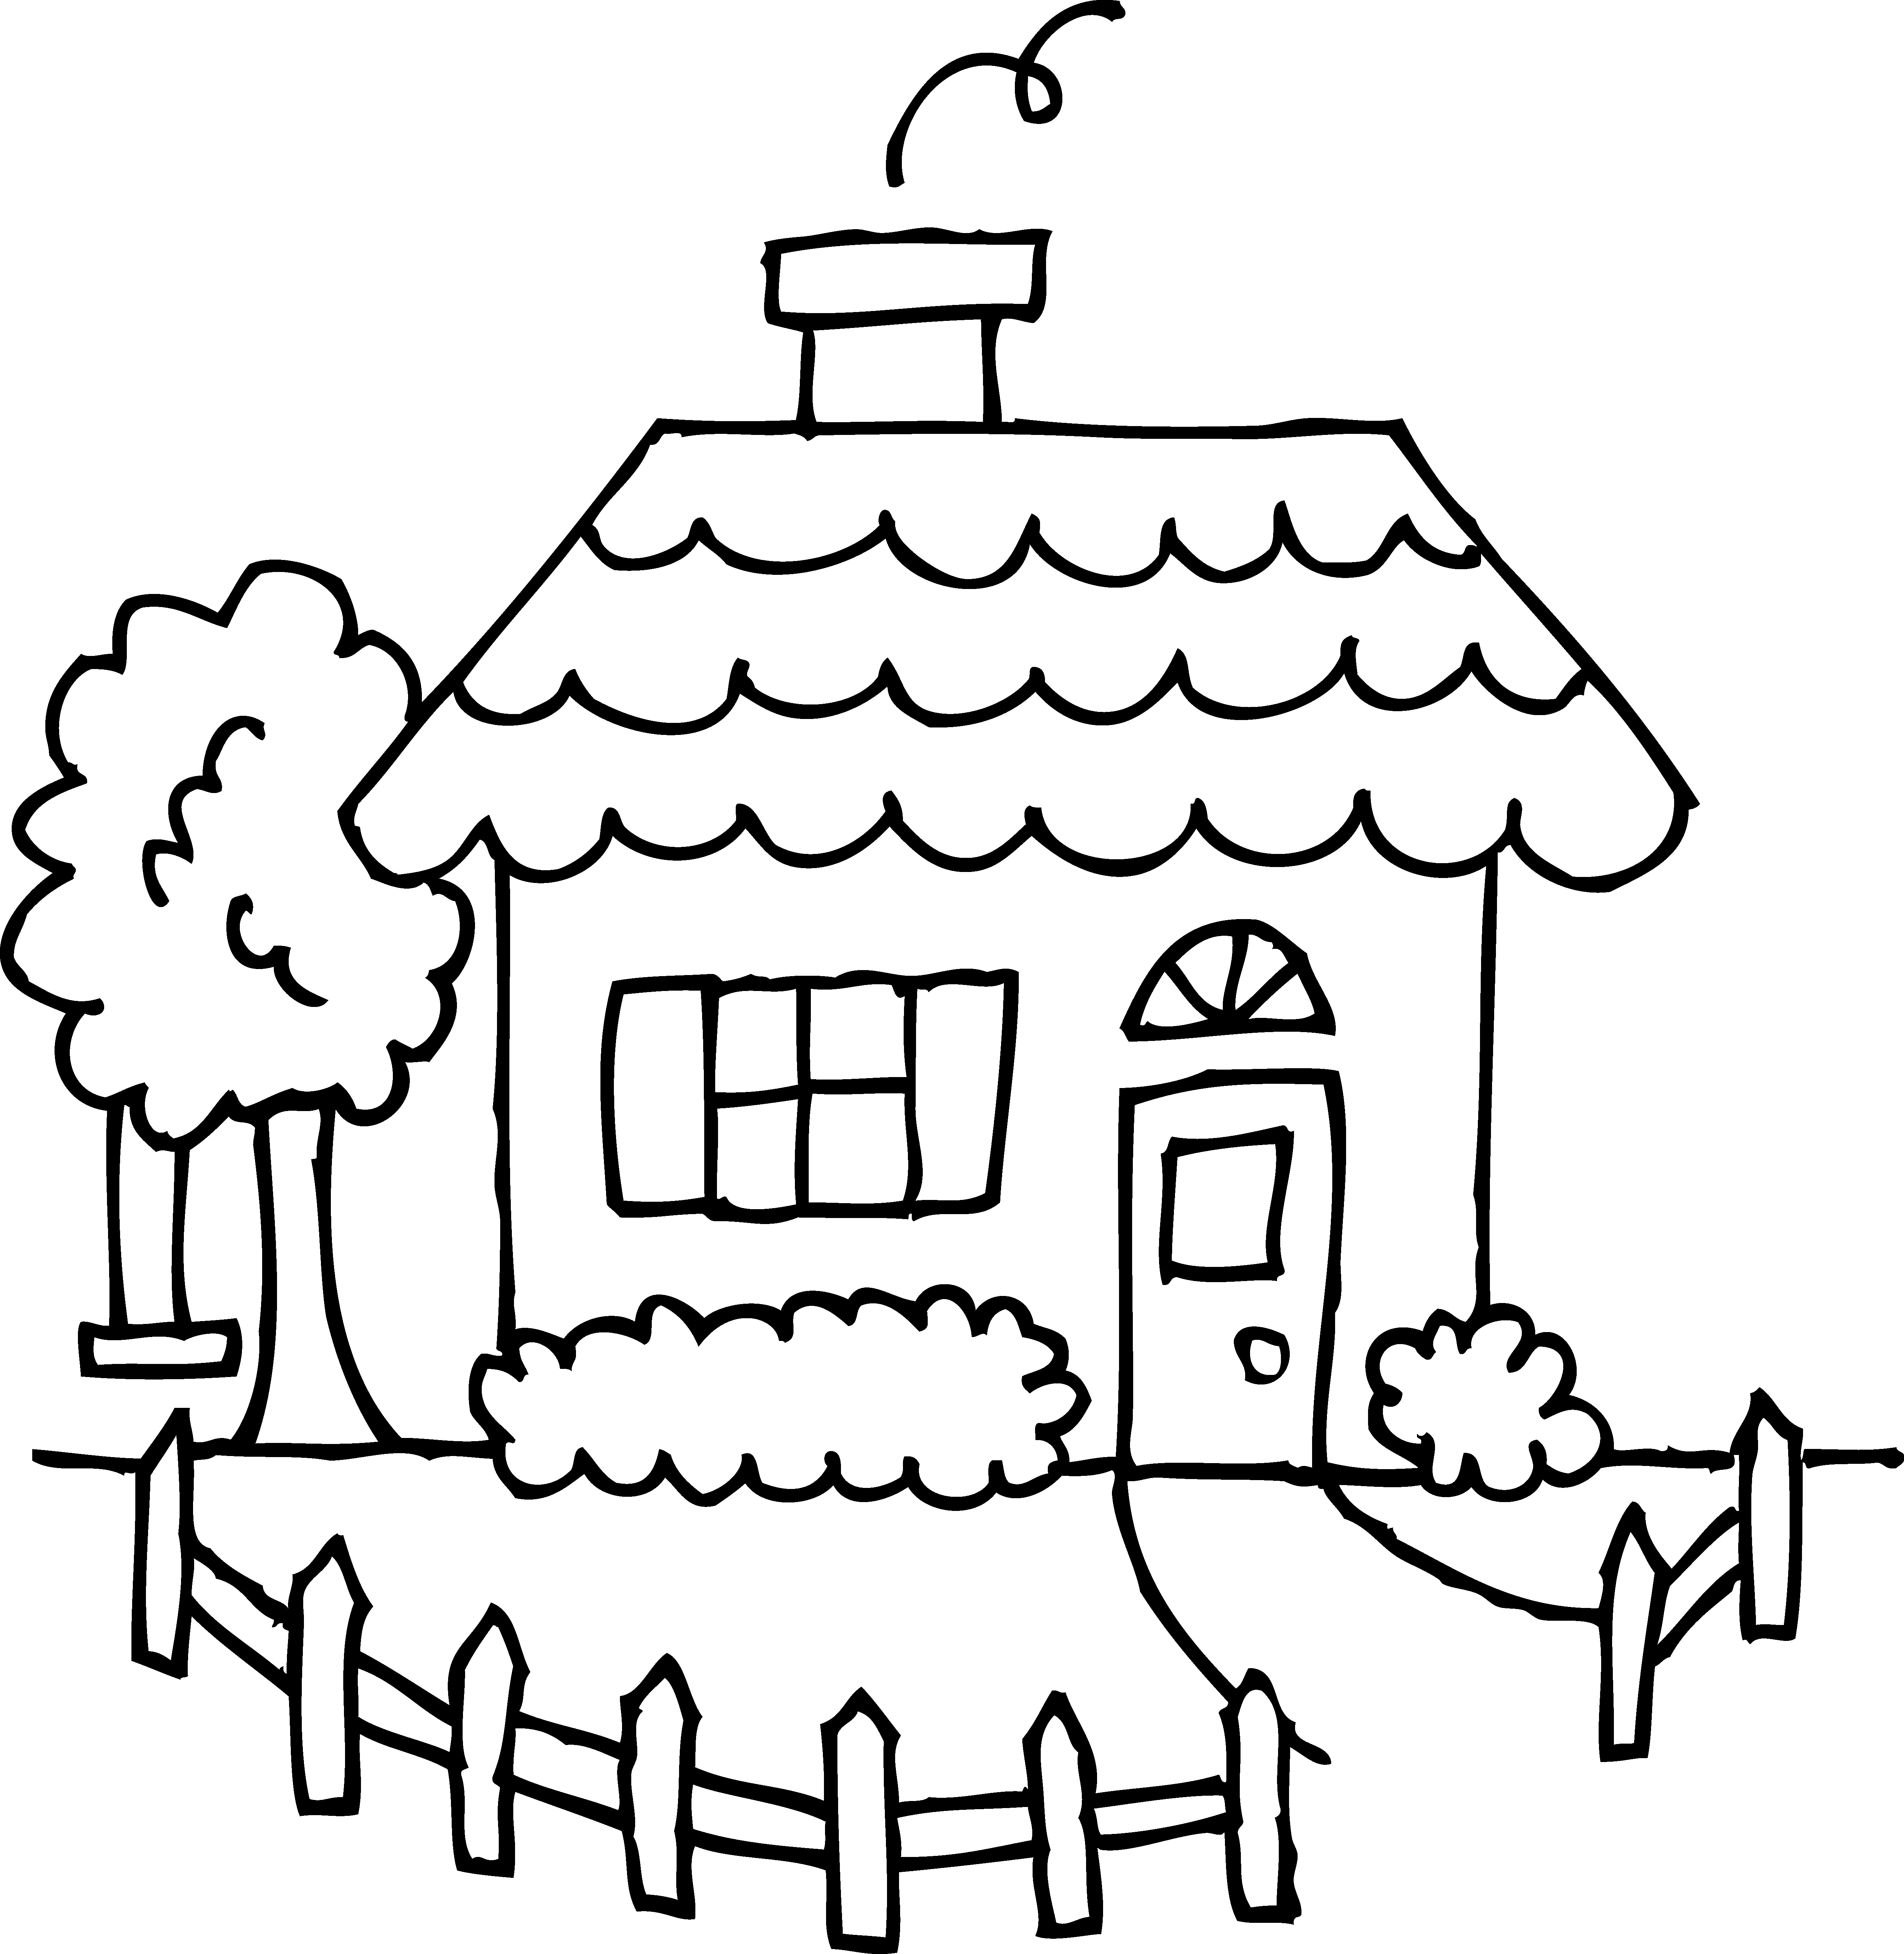 Free Images House, Download Free Clip Art, Free Clip Art on